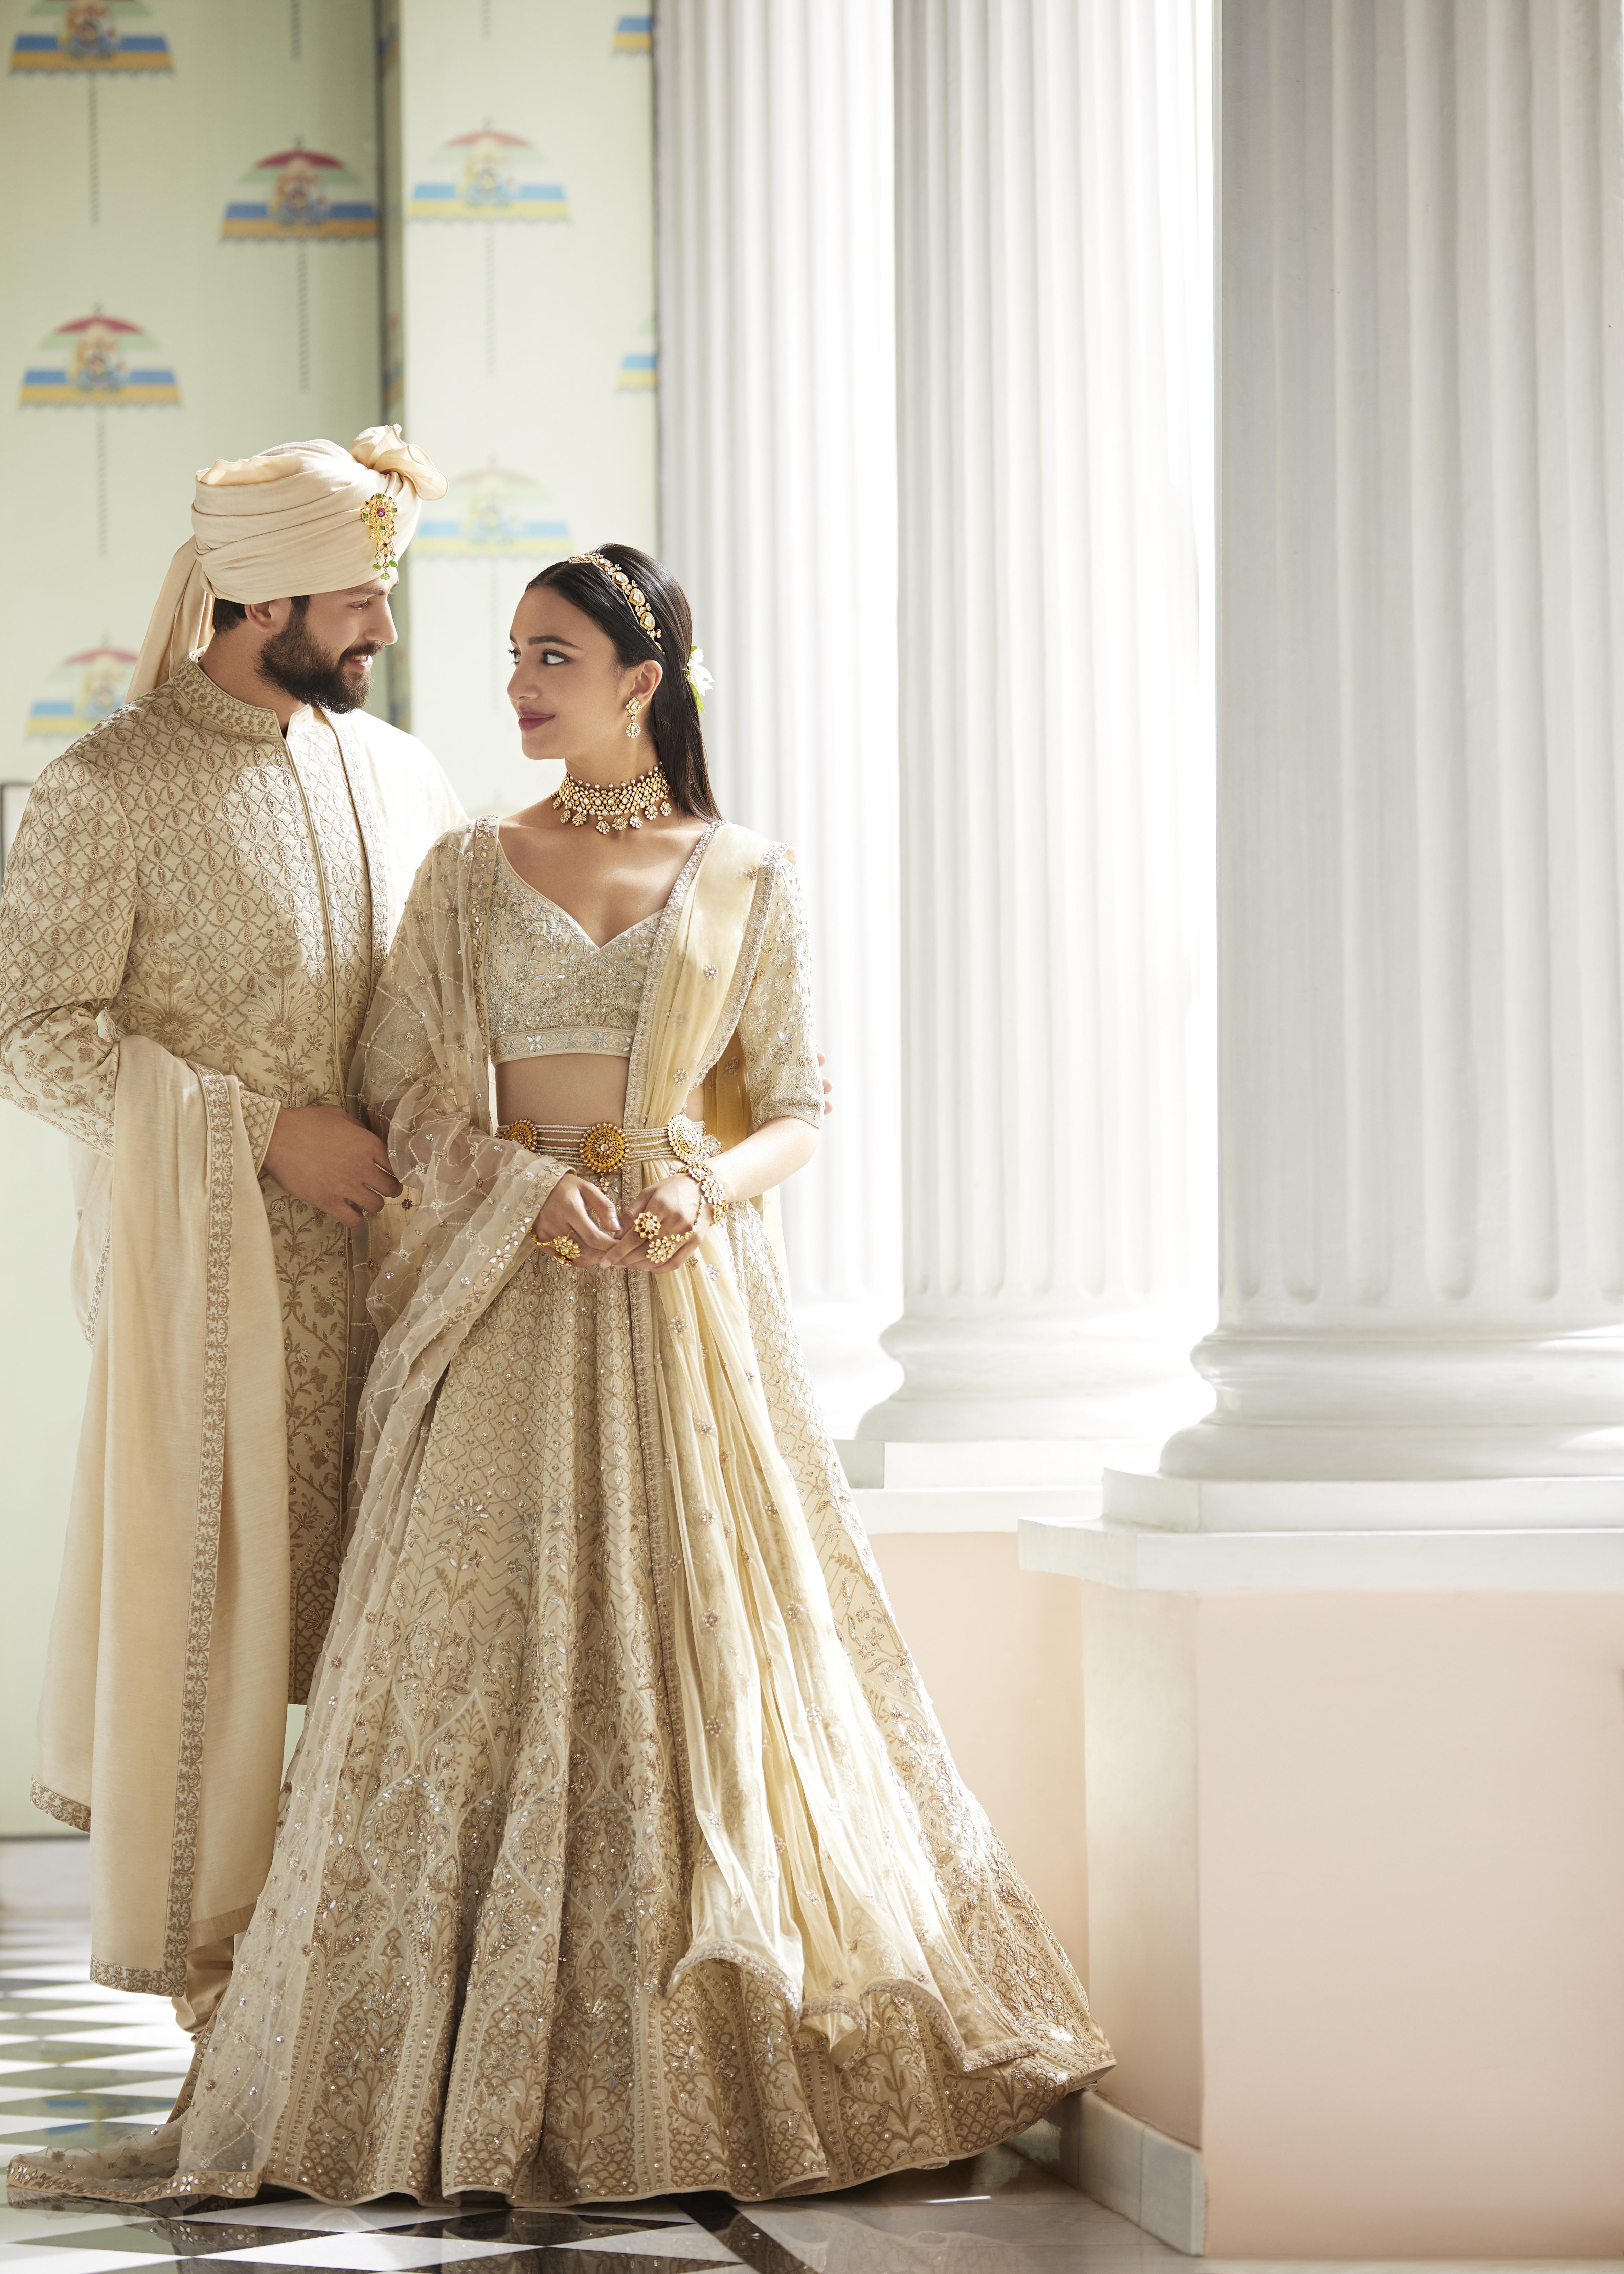 Anita Dongre Talks About Weddings, Fashion And Jaipur Love